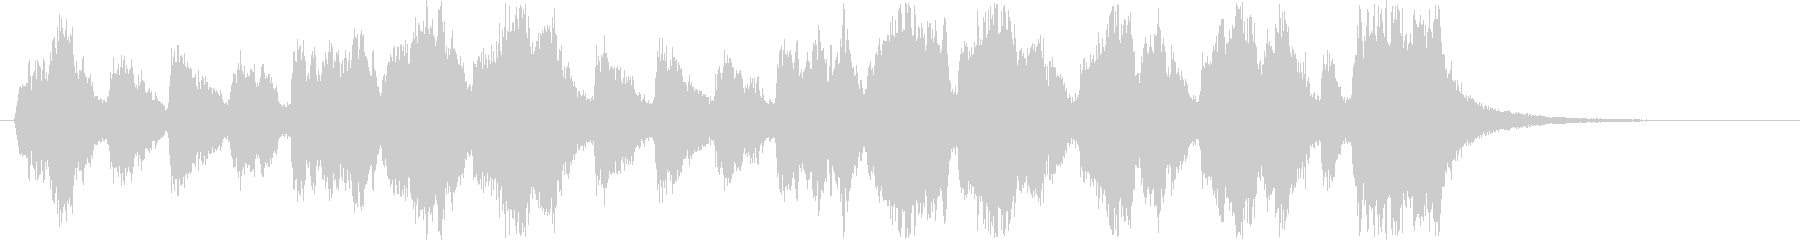 Gently fun short song's unreproduced waveform